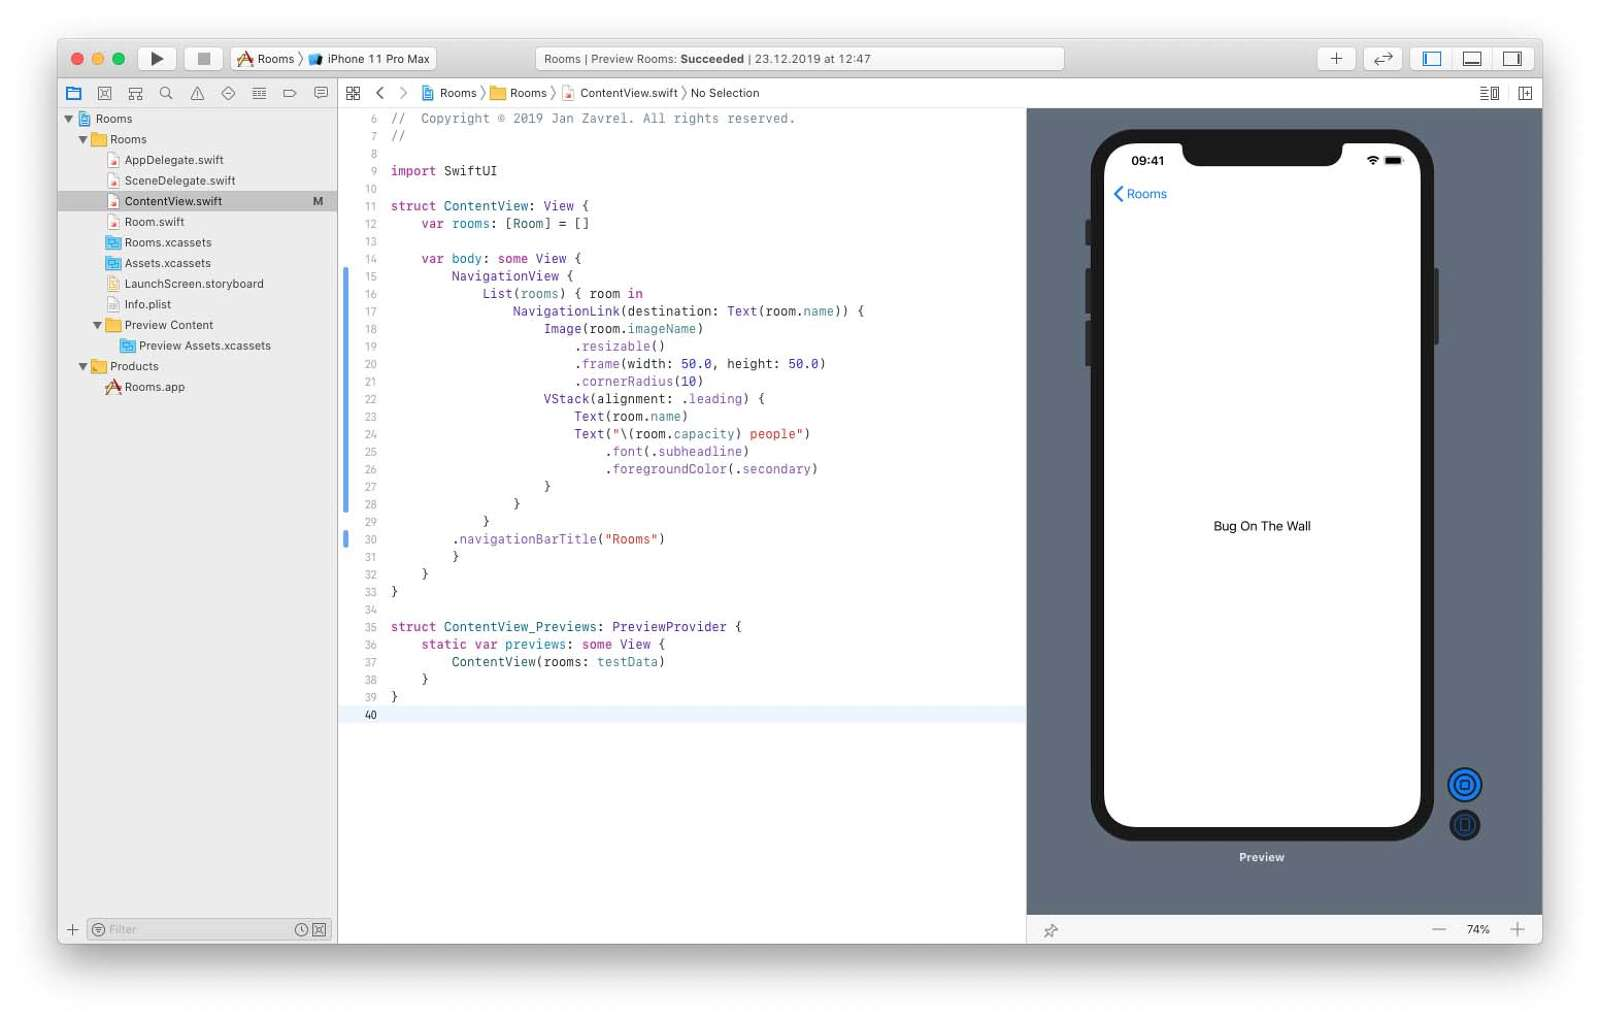 https://res.cloudinary.com/codewithjan/image/upload/v1578423840/swiftui-by-examples/swiftui-by-examples-32.jpg